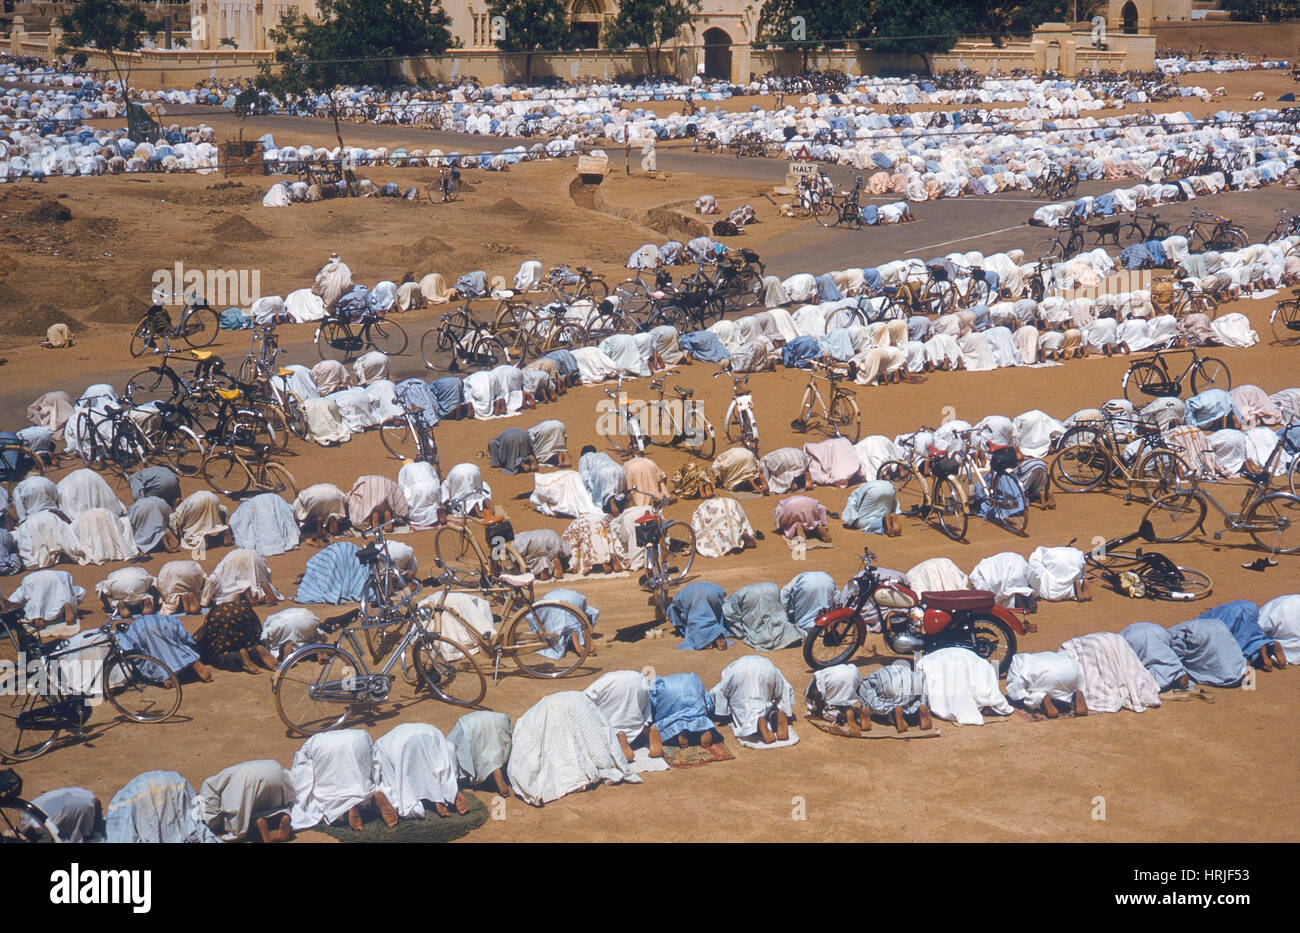 Muslims Pray Before Mosque - Stock Image